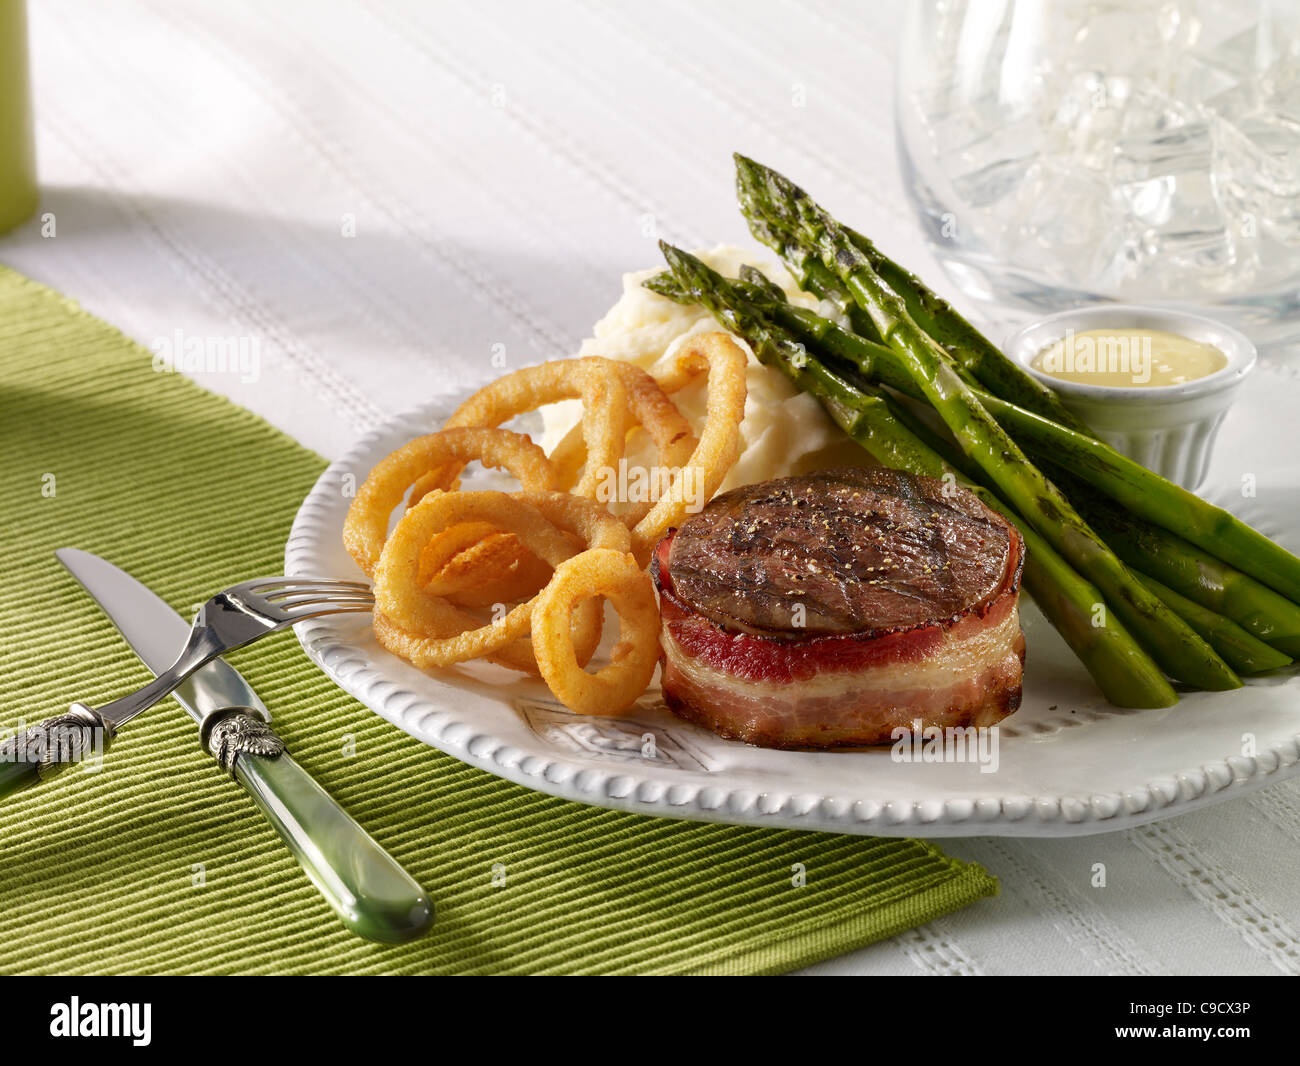 Beef tenderloin served with mash potato, asparagus and onion rings - Stock Image